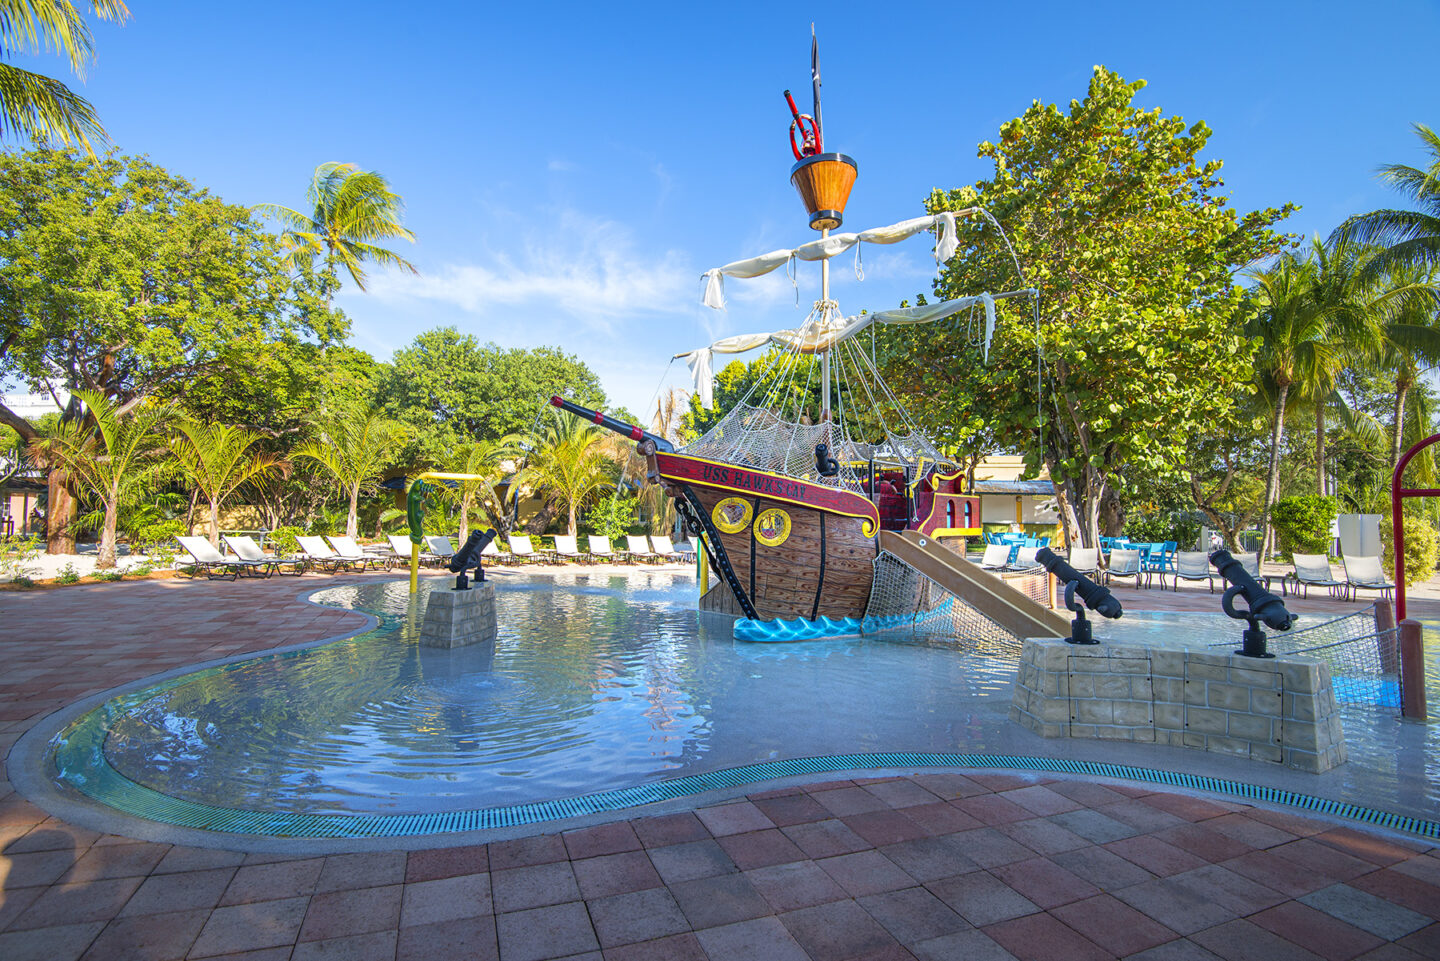 Why We Think Hawks Cay Resort is the Best Family Resort in the Florida Keys